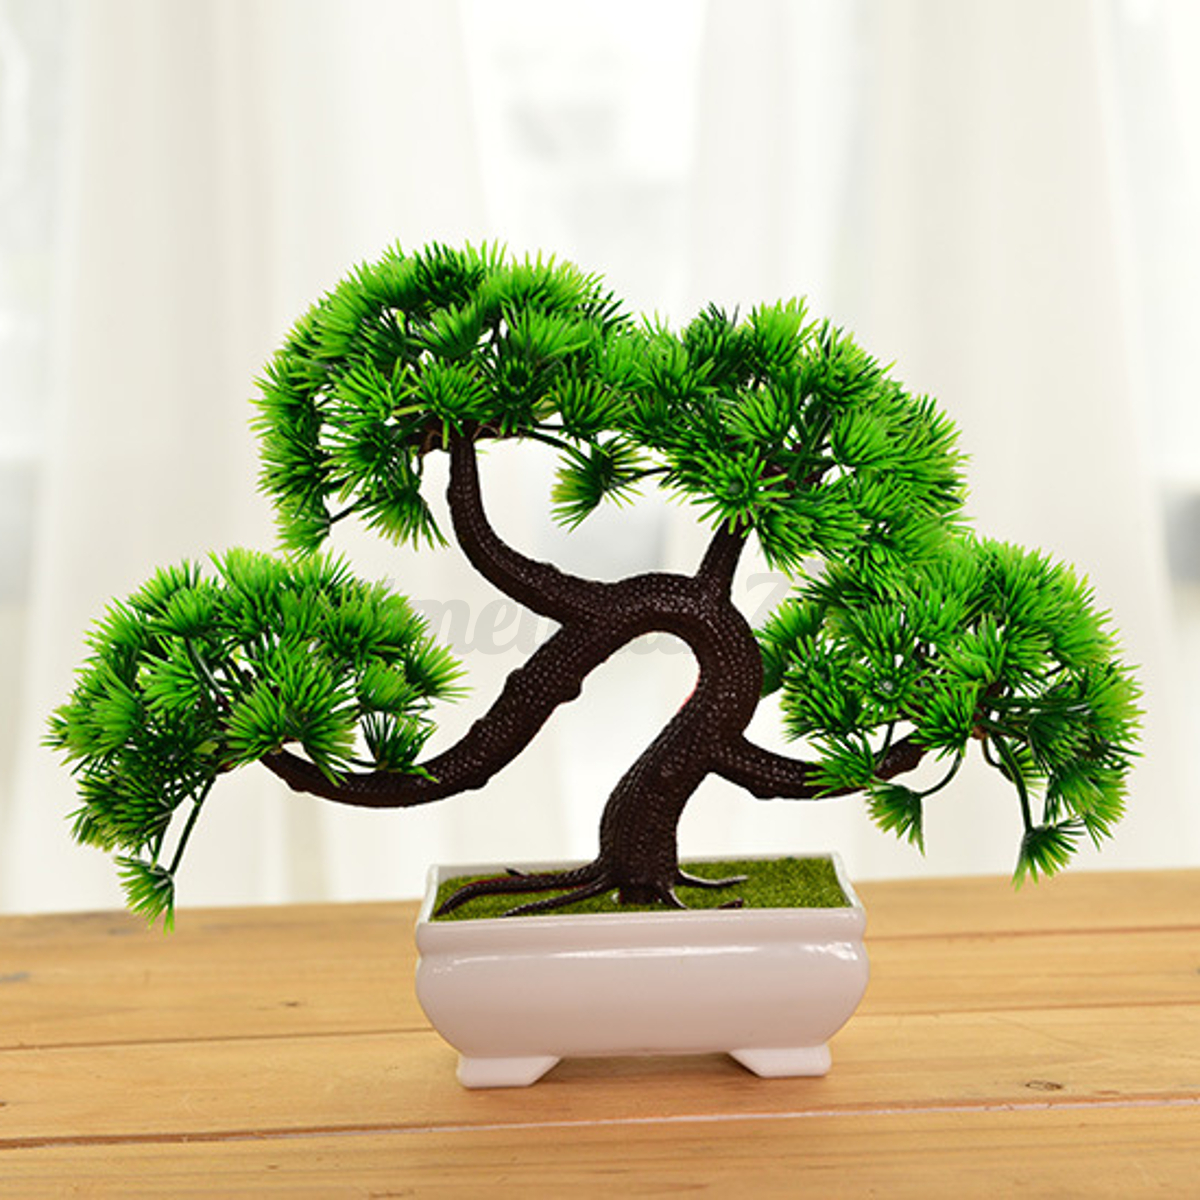 18 20cm artificial bonsai tree with pot potted plant. Black Bedroom Furniture Sets. Home Design Ideas